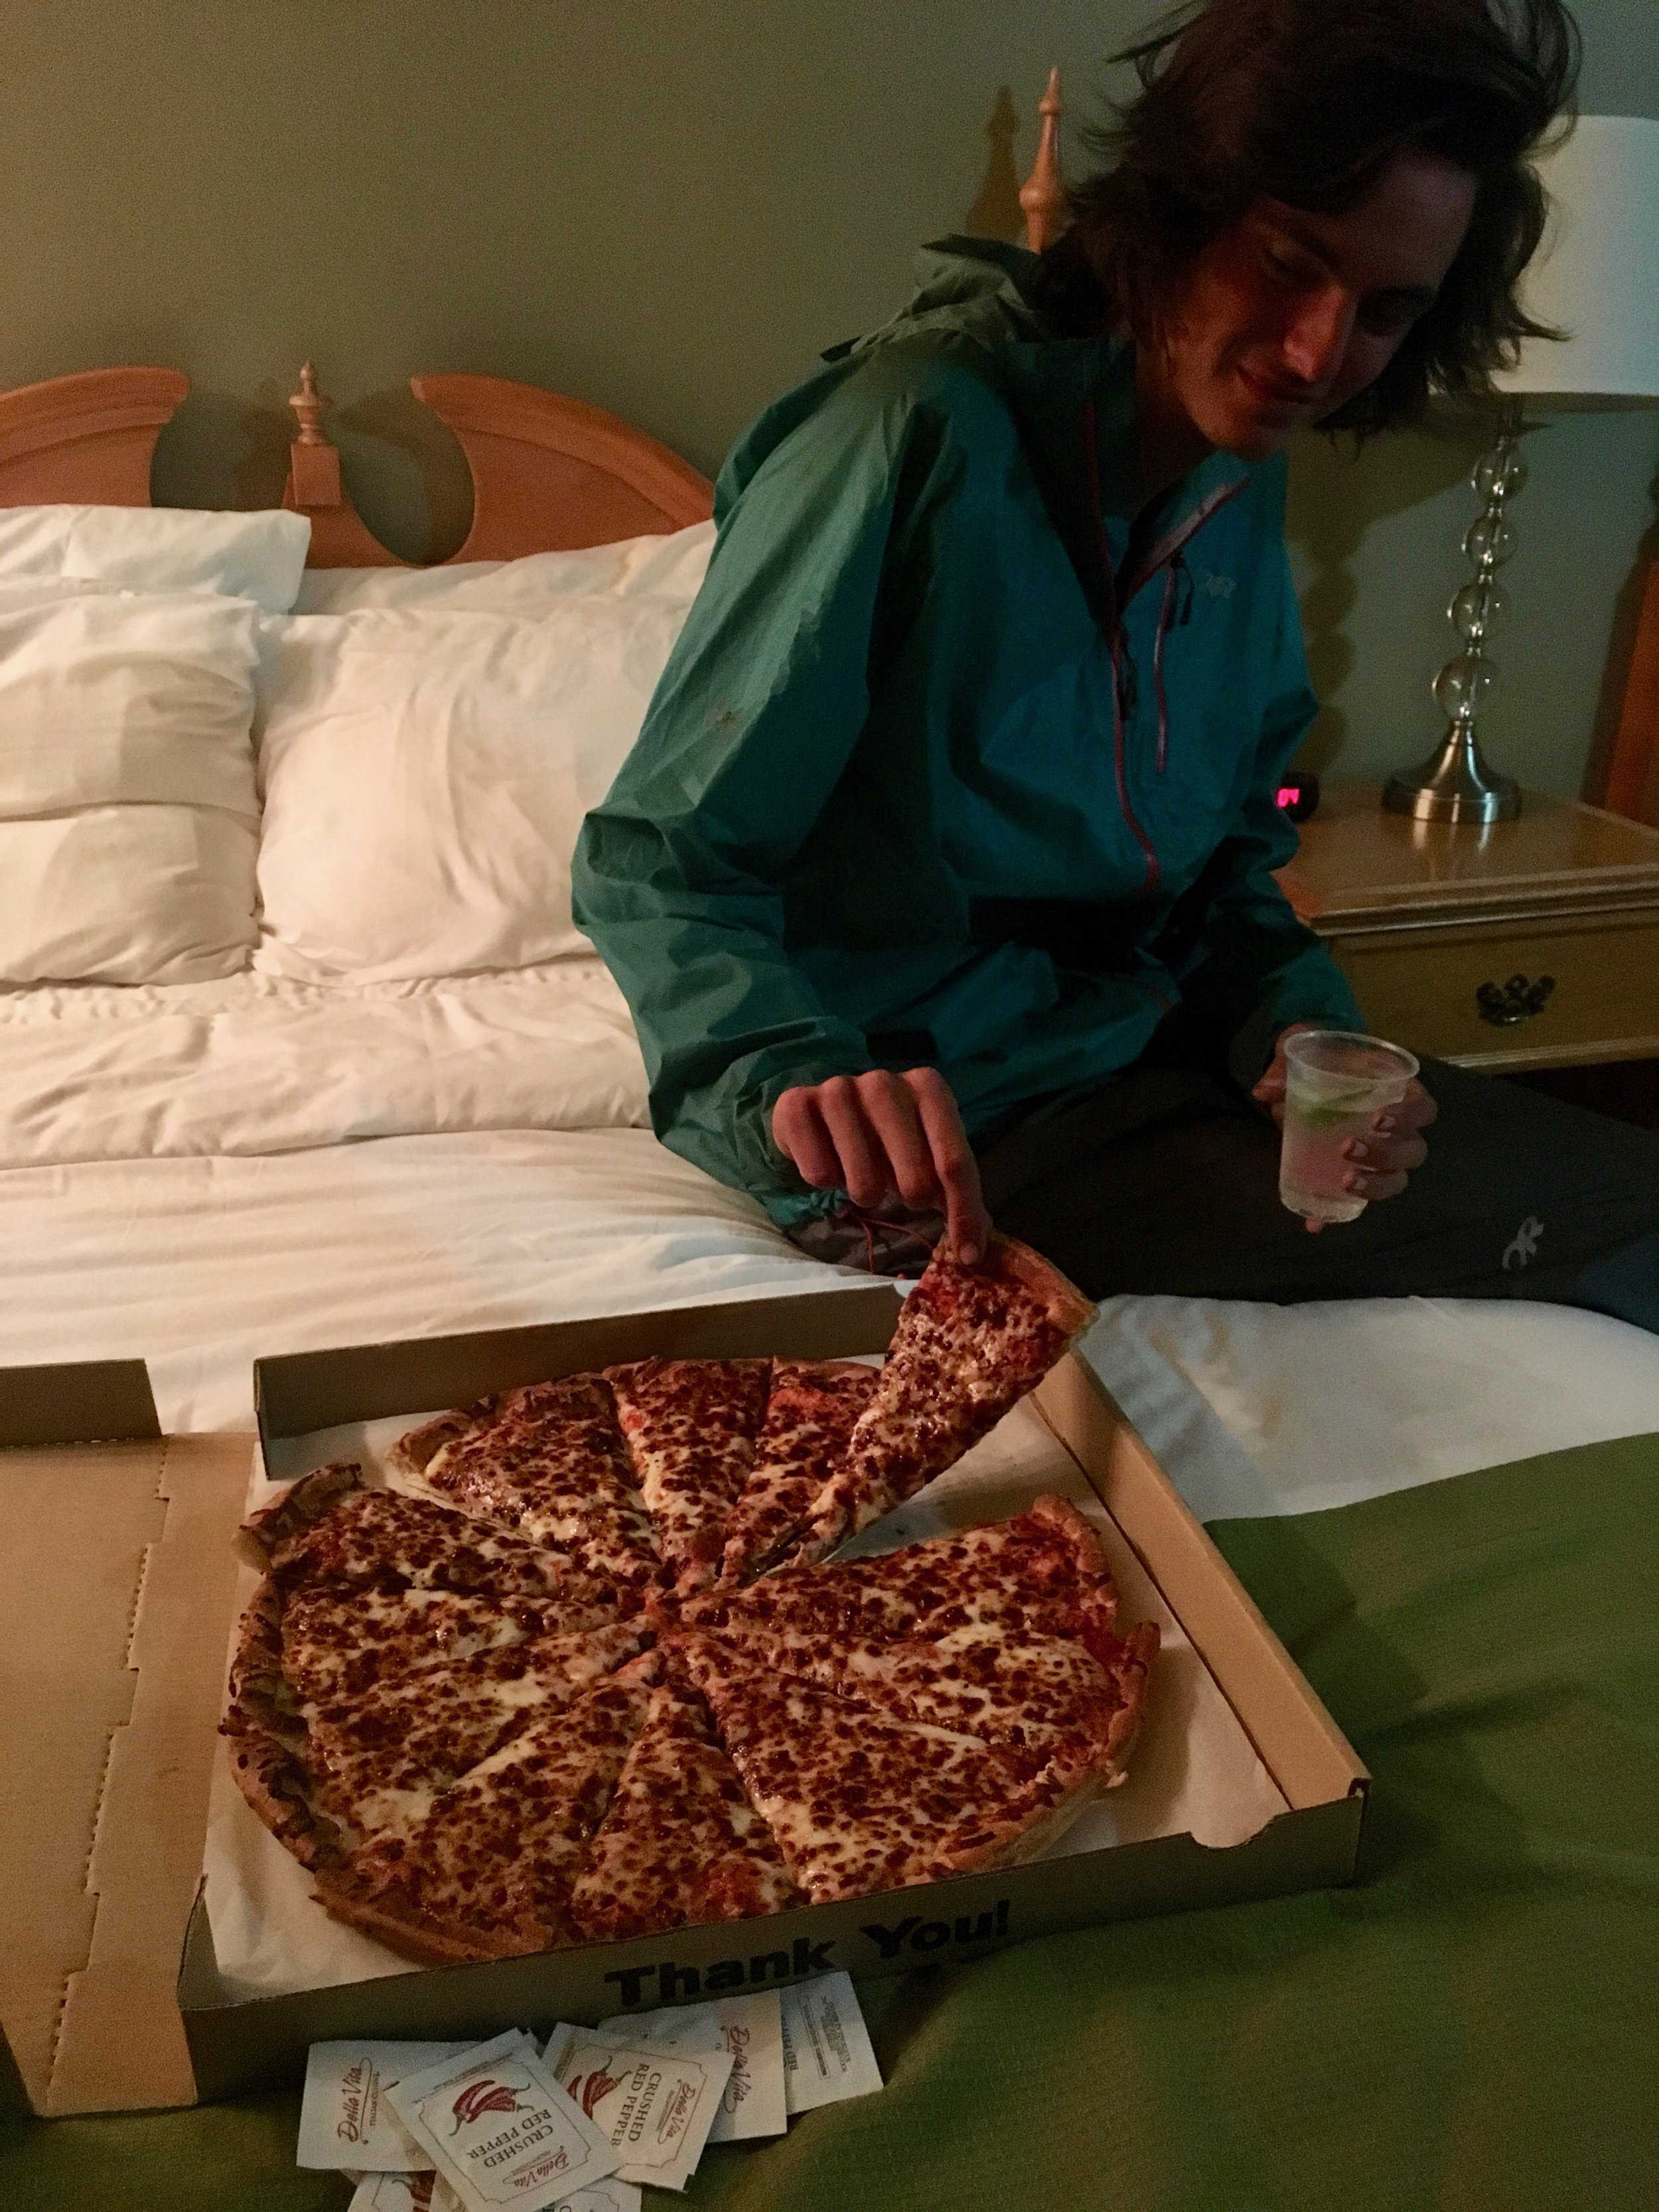 Splurged in Leavenworth, WA with a very large pizza with gin & tonics we made in our hotel room.